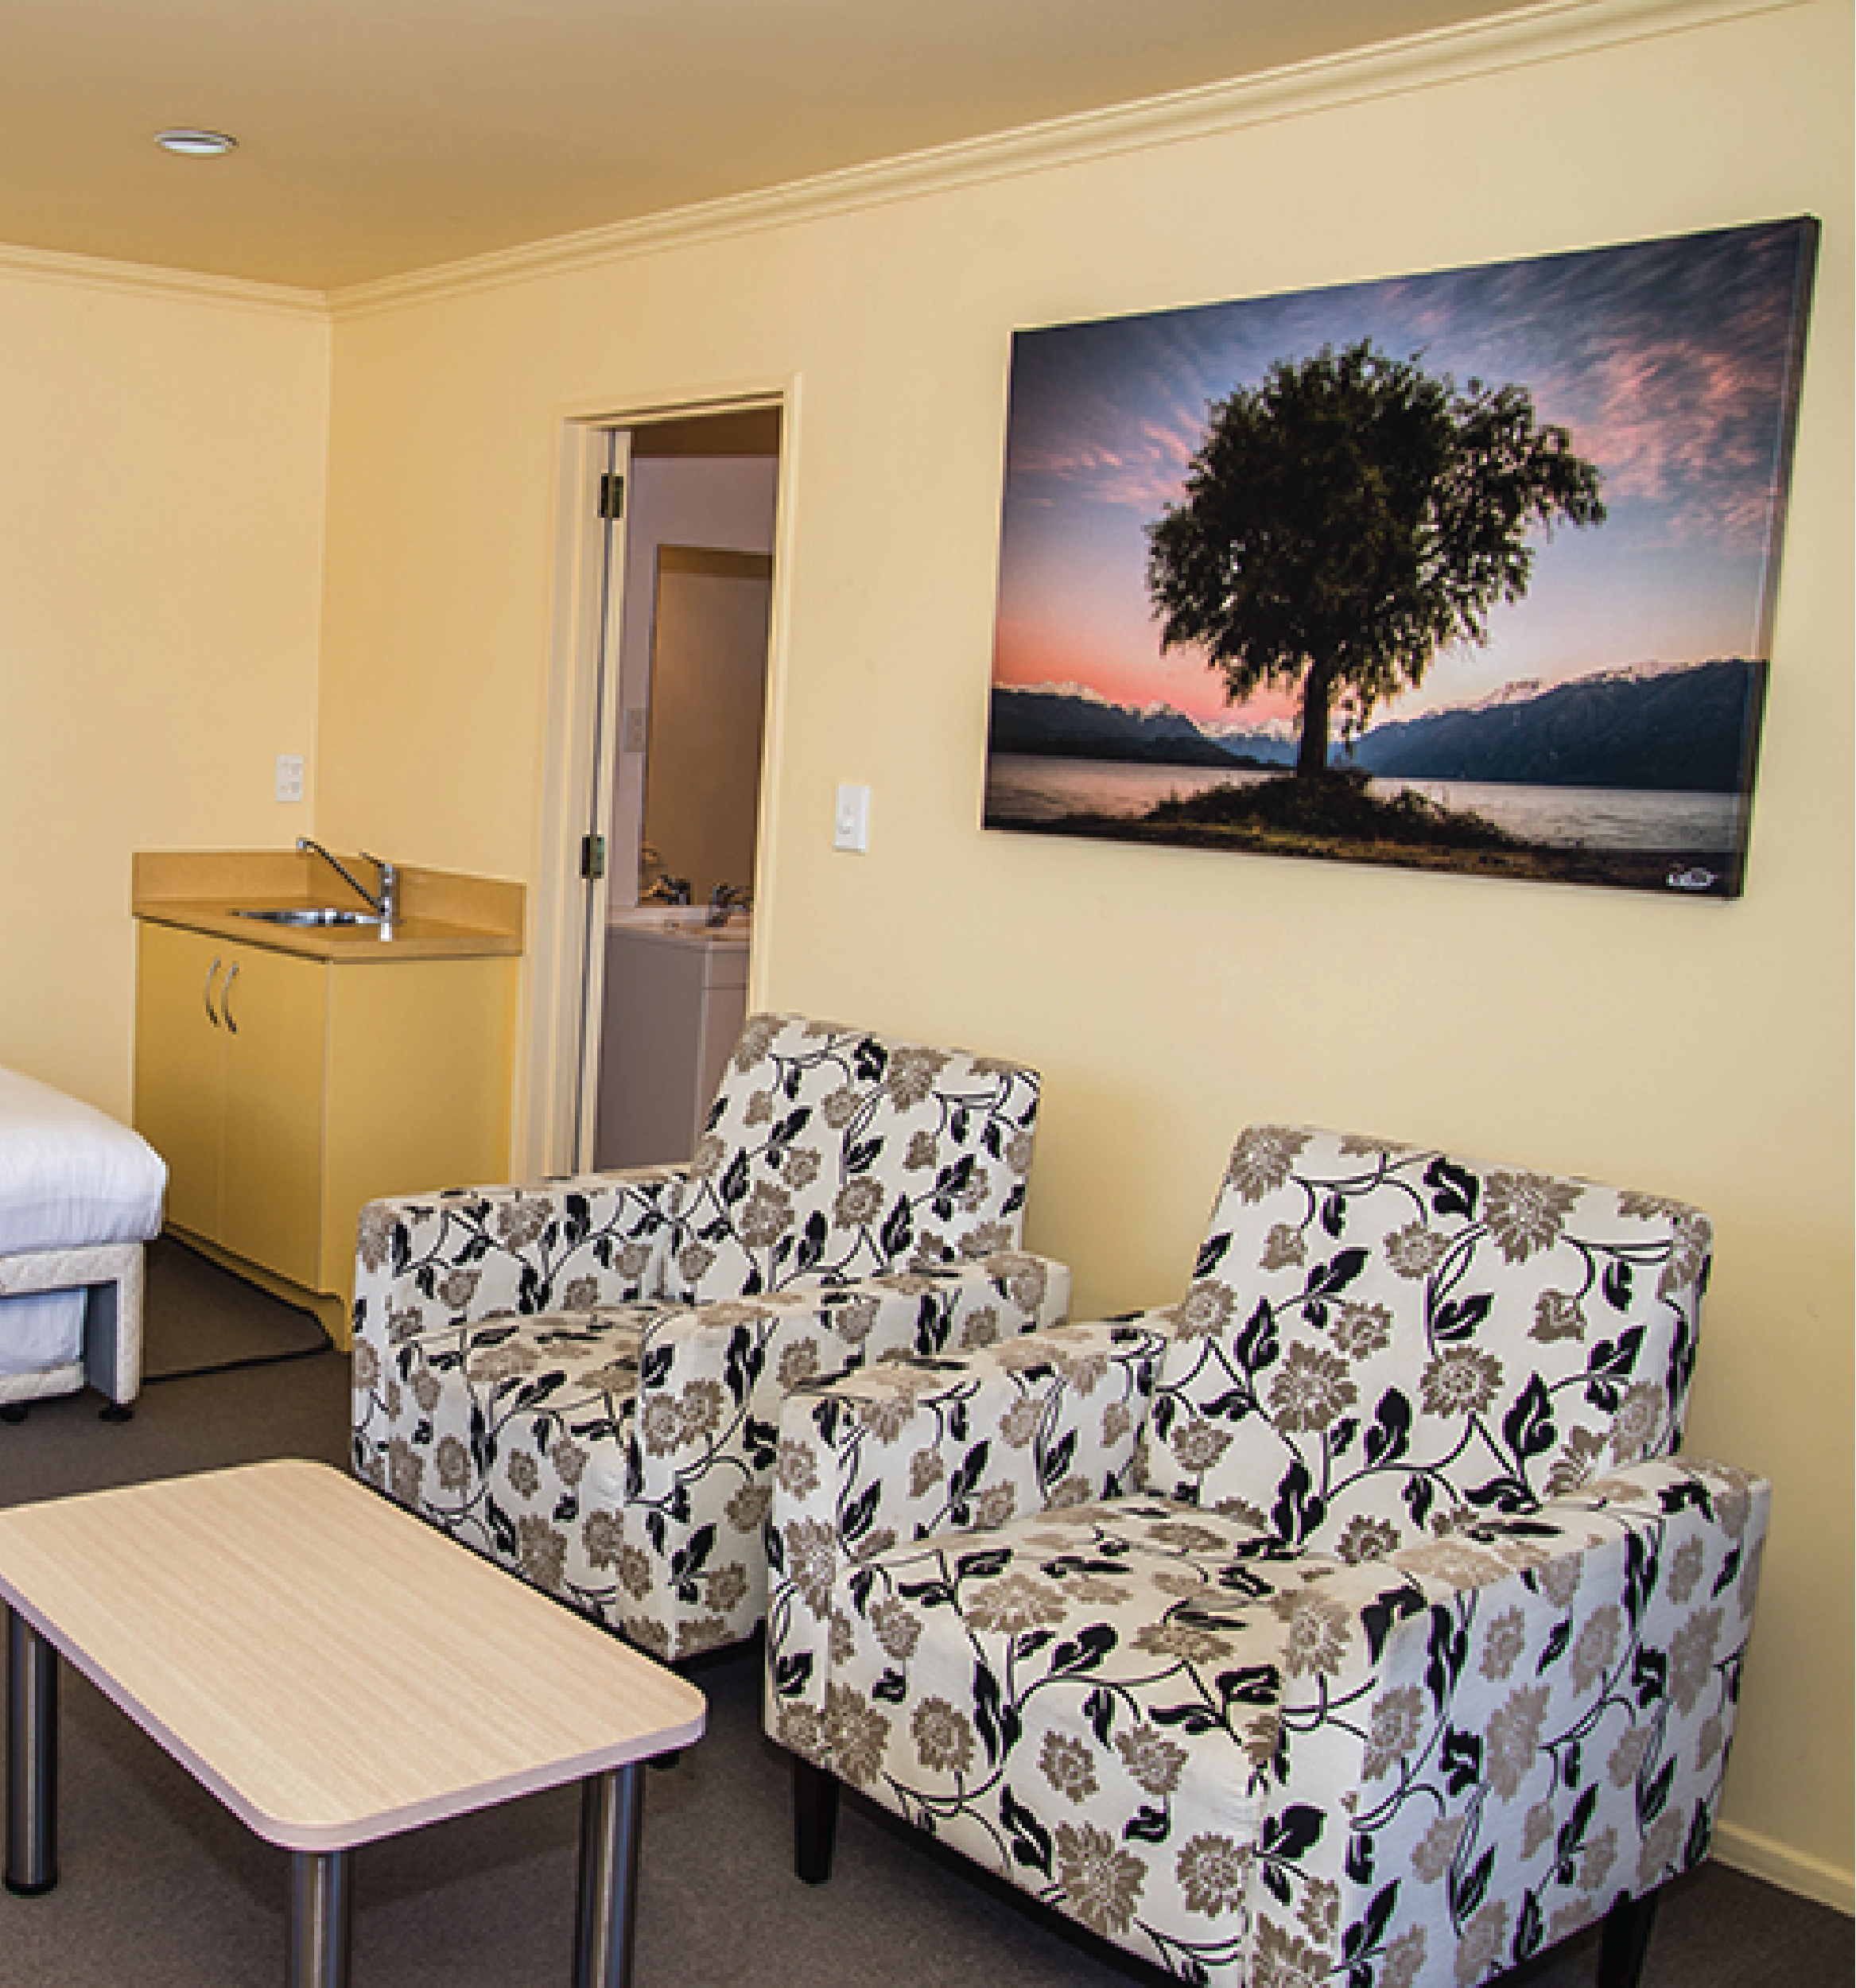 Lounge area of the Edgewater Motel Lakefront unit. Two light-coloured chairs with a large photo of a tree hanging above.